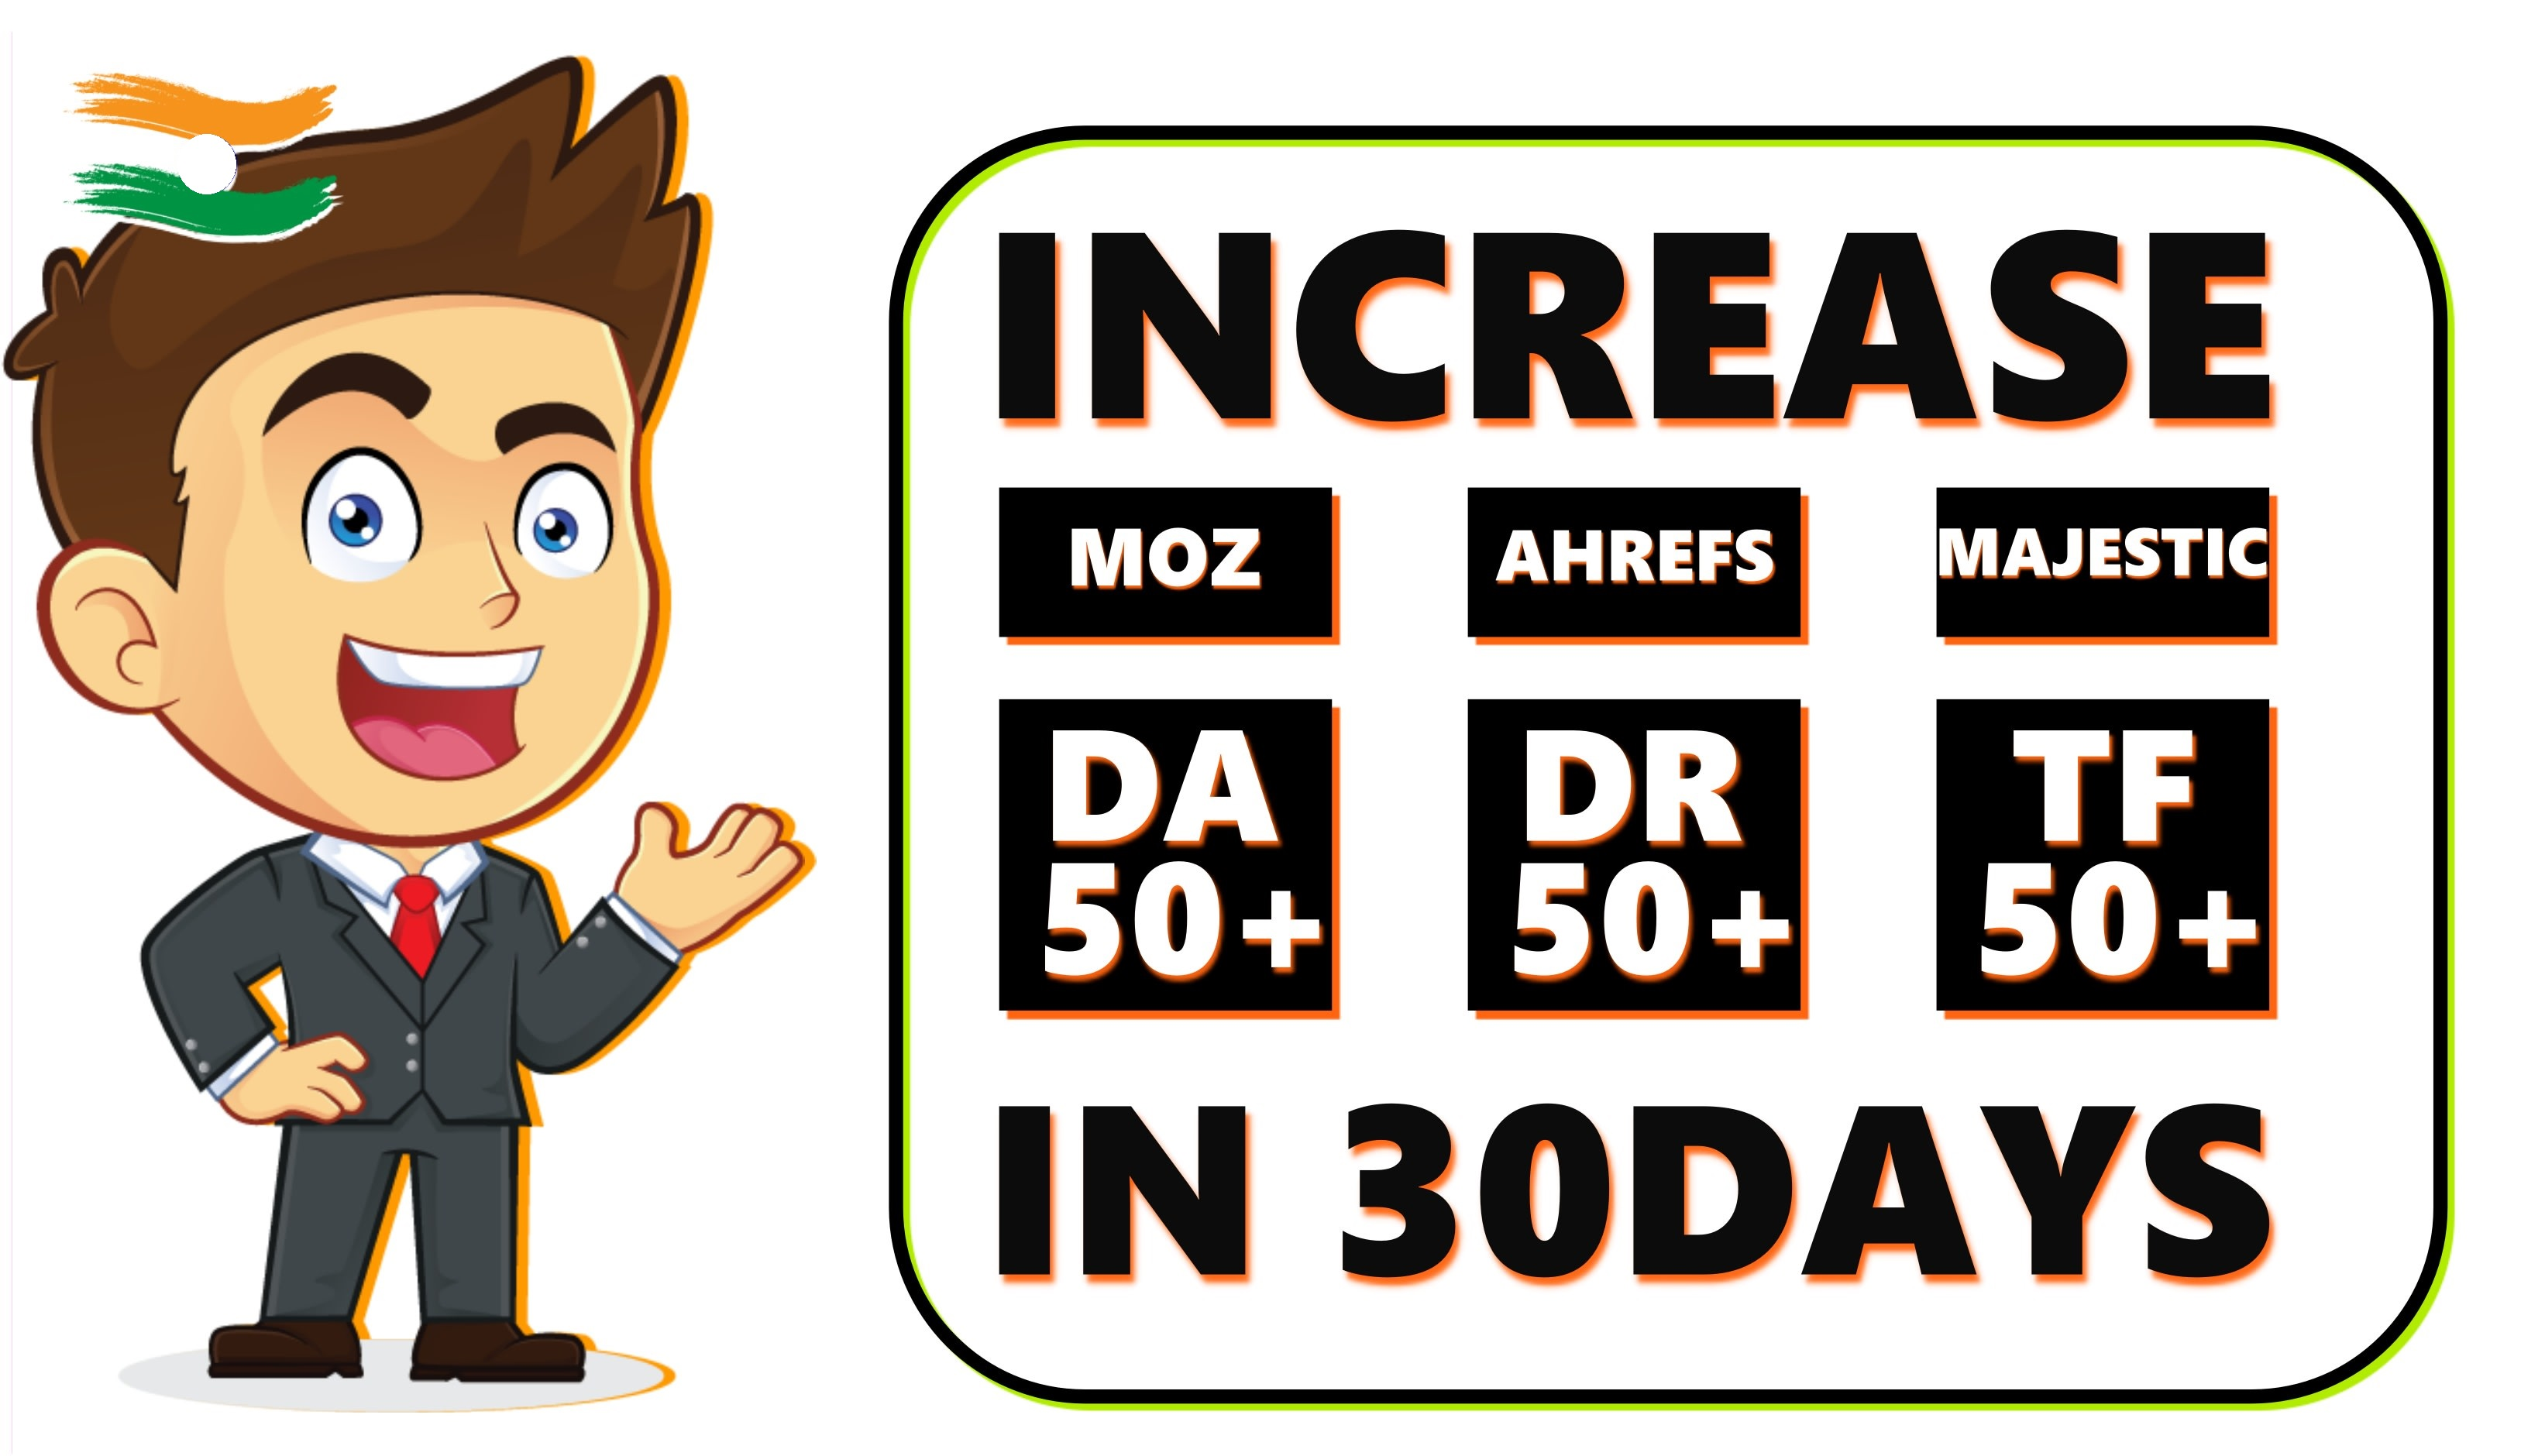 I will increase da DR 50+ and tf 50+ of your domain